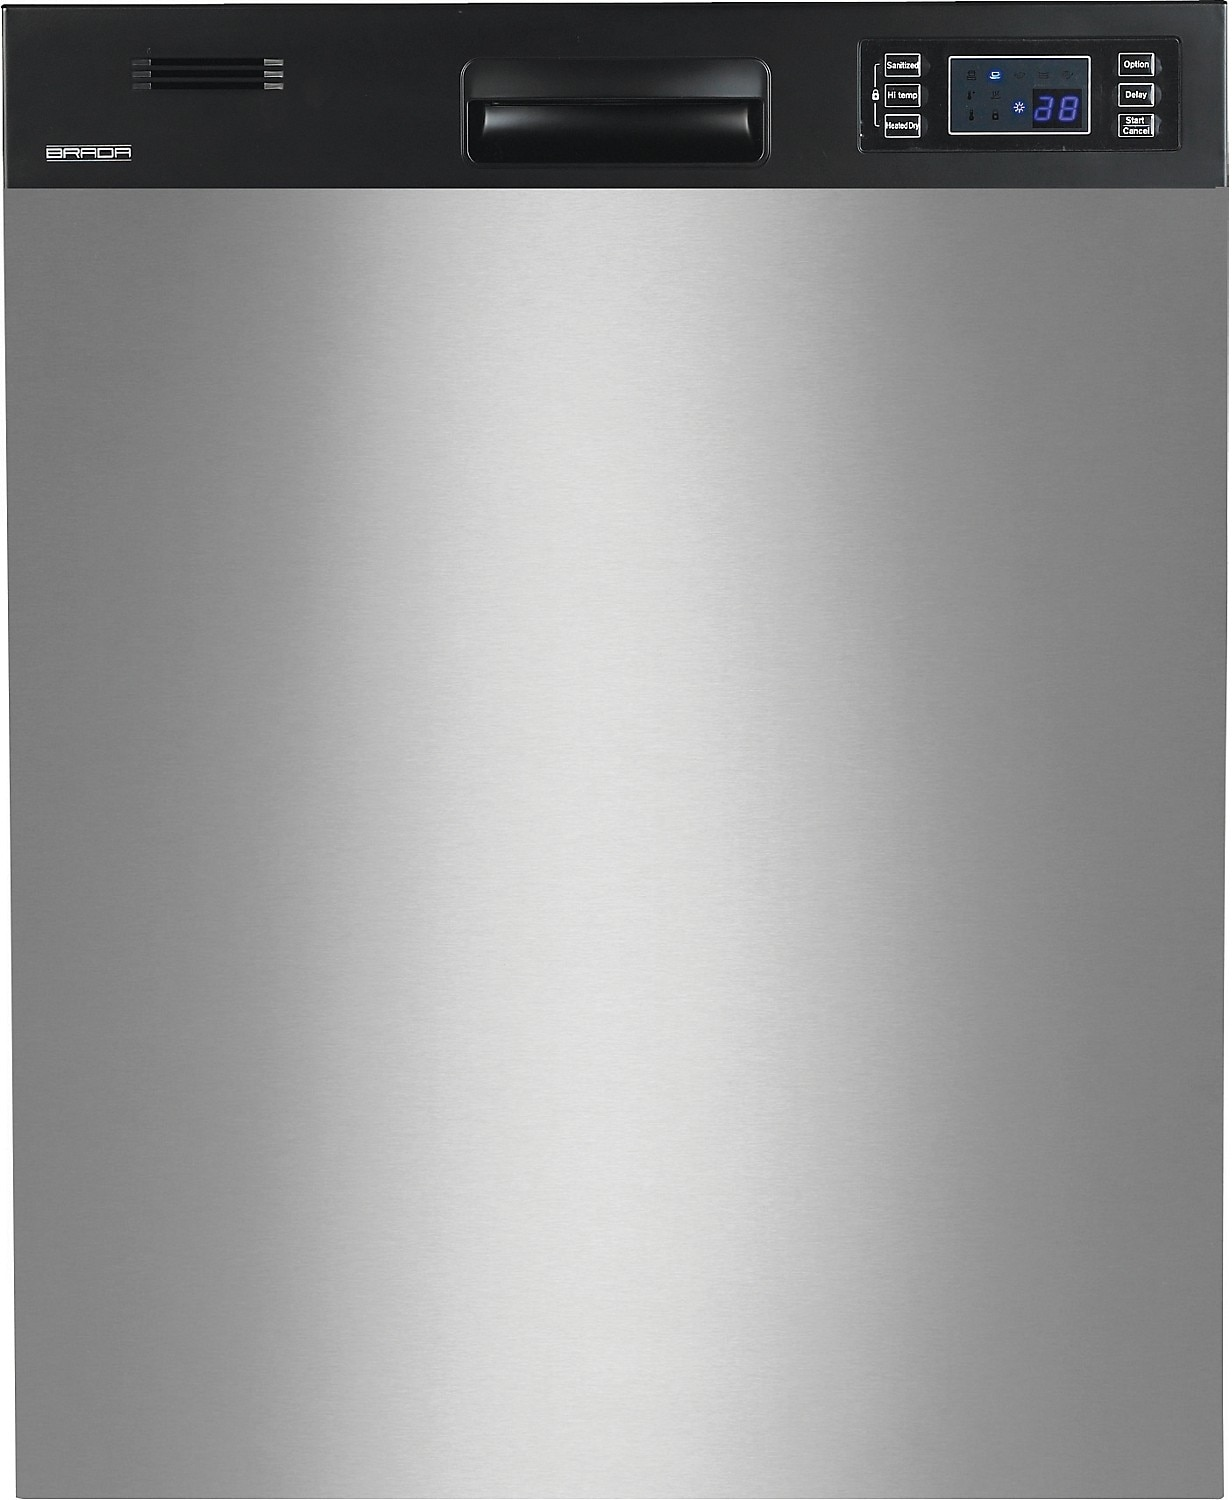 clean inside stainless steel dishwasher